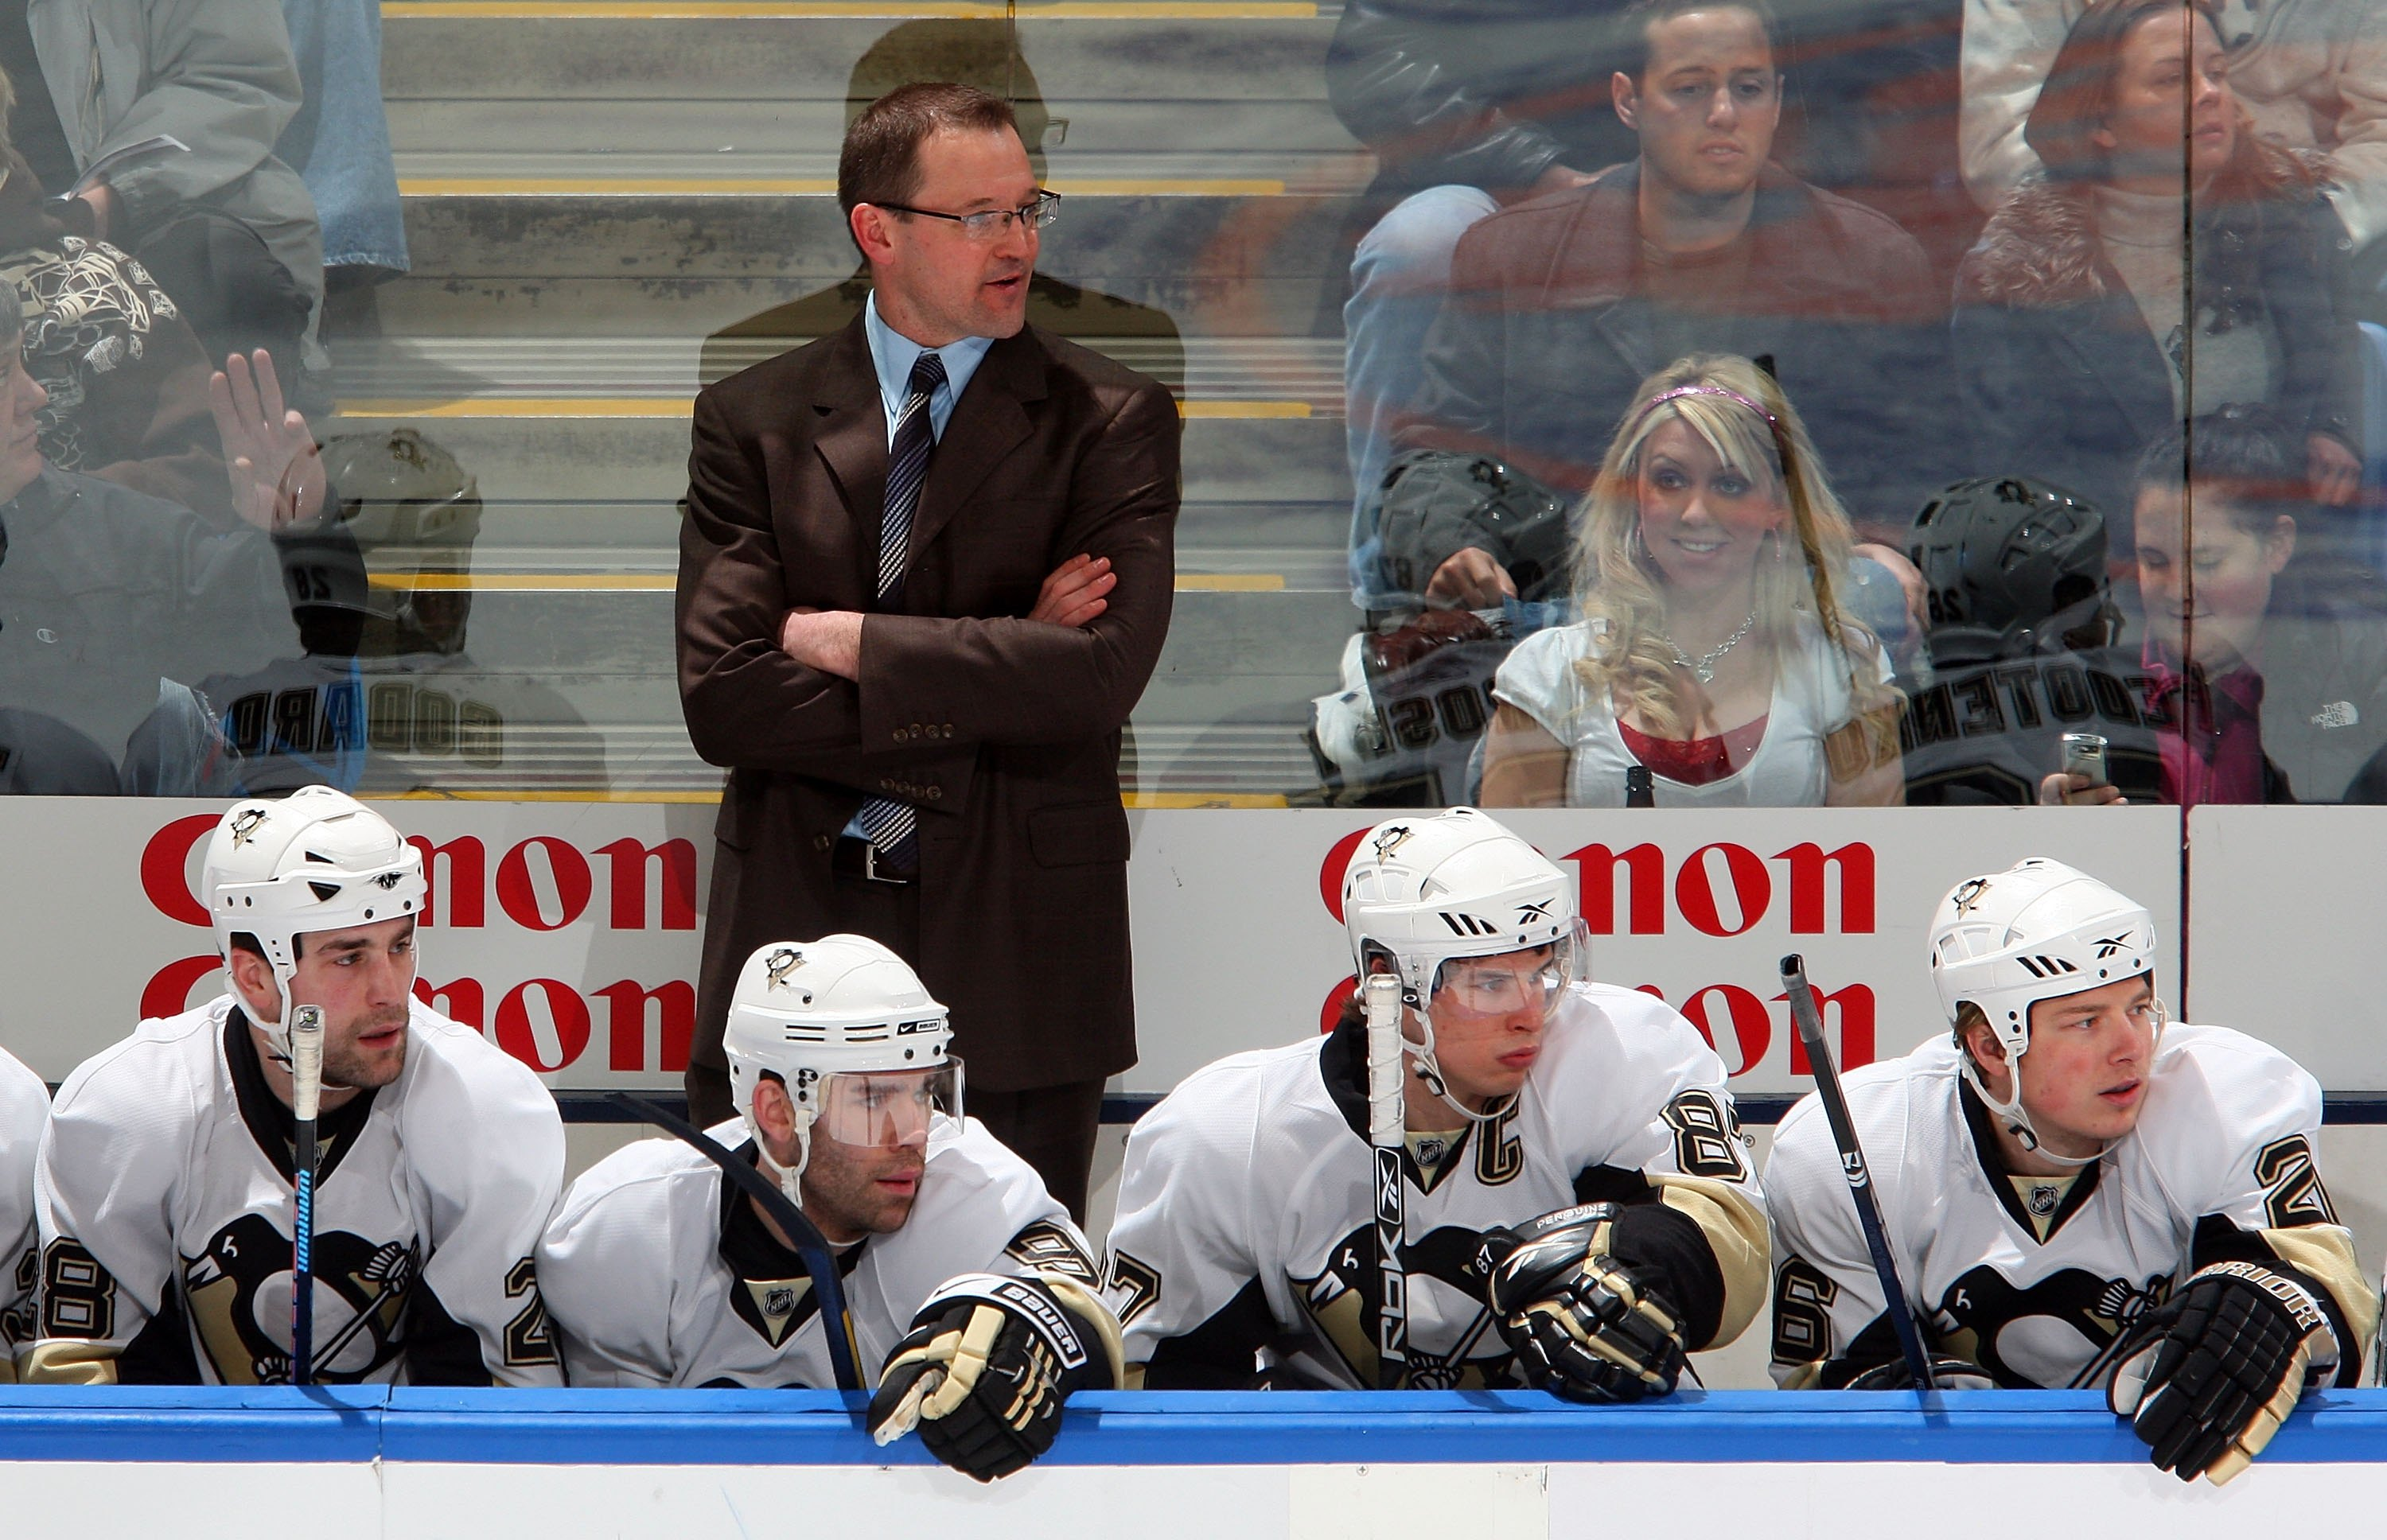 Dan Bylsma's first game coaching was with Pittsburgh on Feb. 16, 2009. (Getty Images)